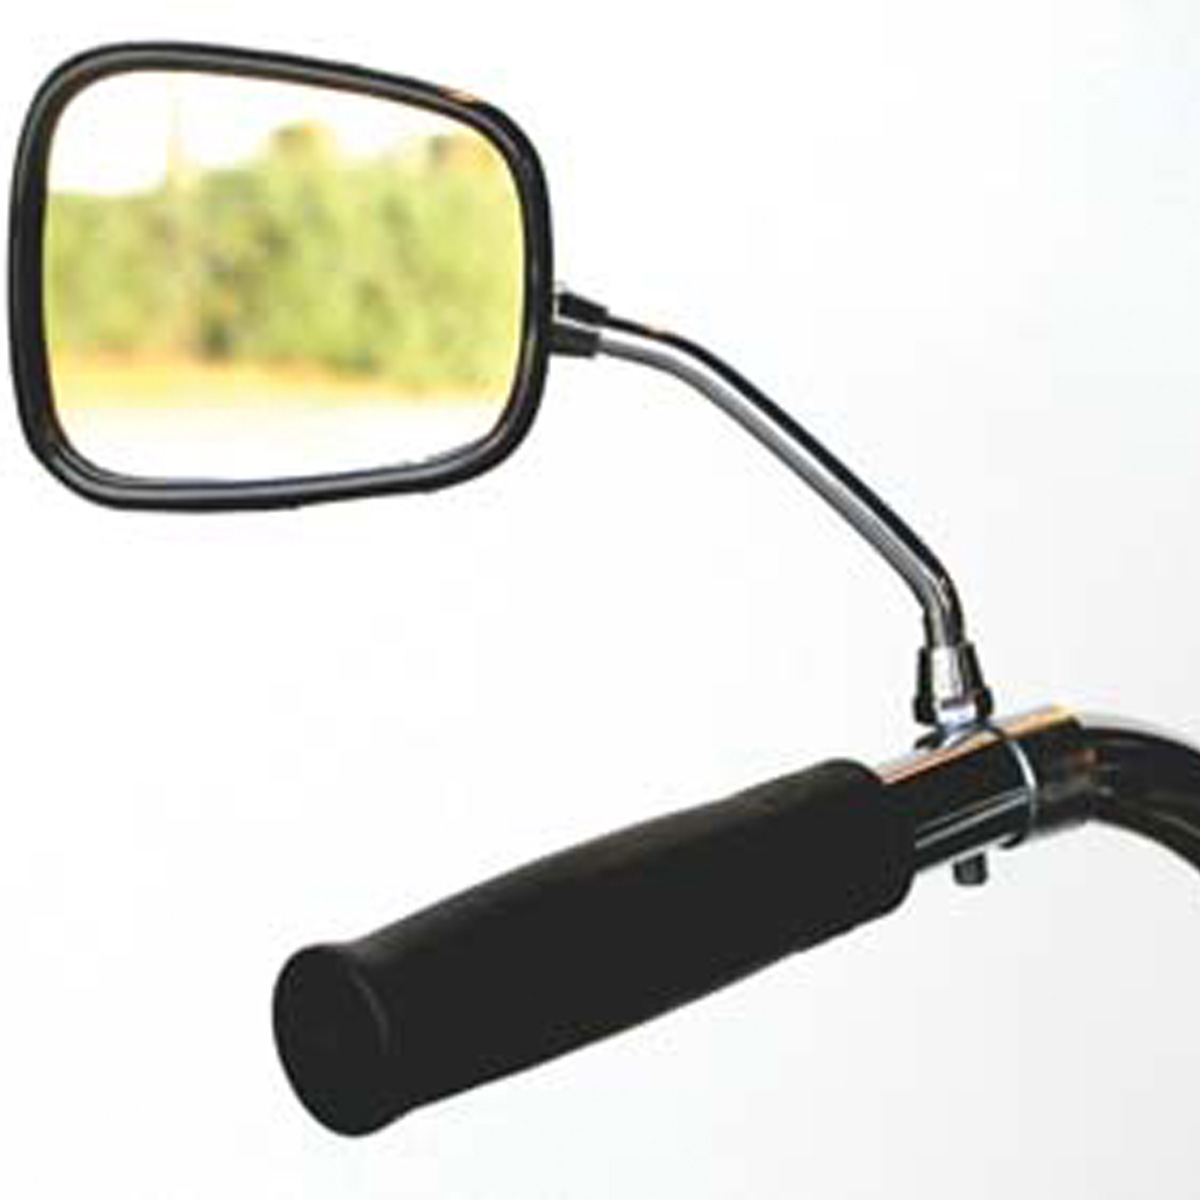 Summit Rectangle Handlebar Mount Bicycle Mirror w/Reflector - CL-106